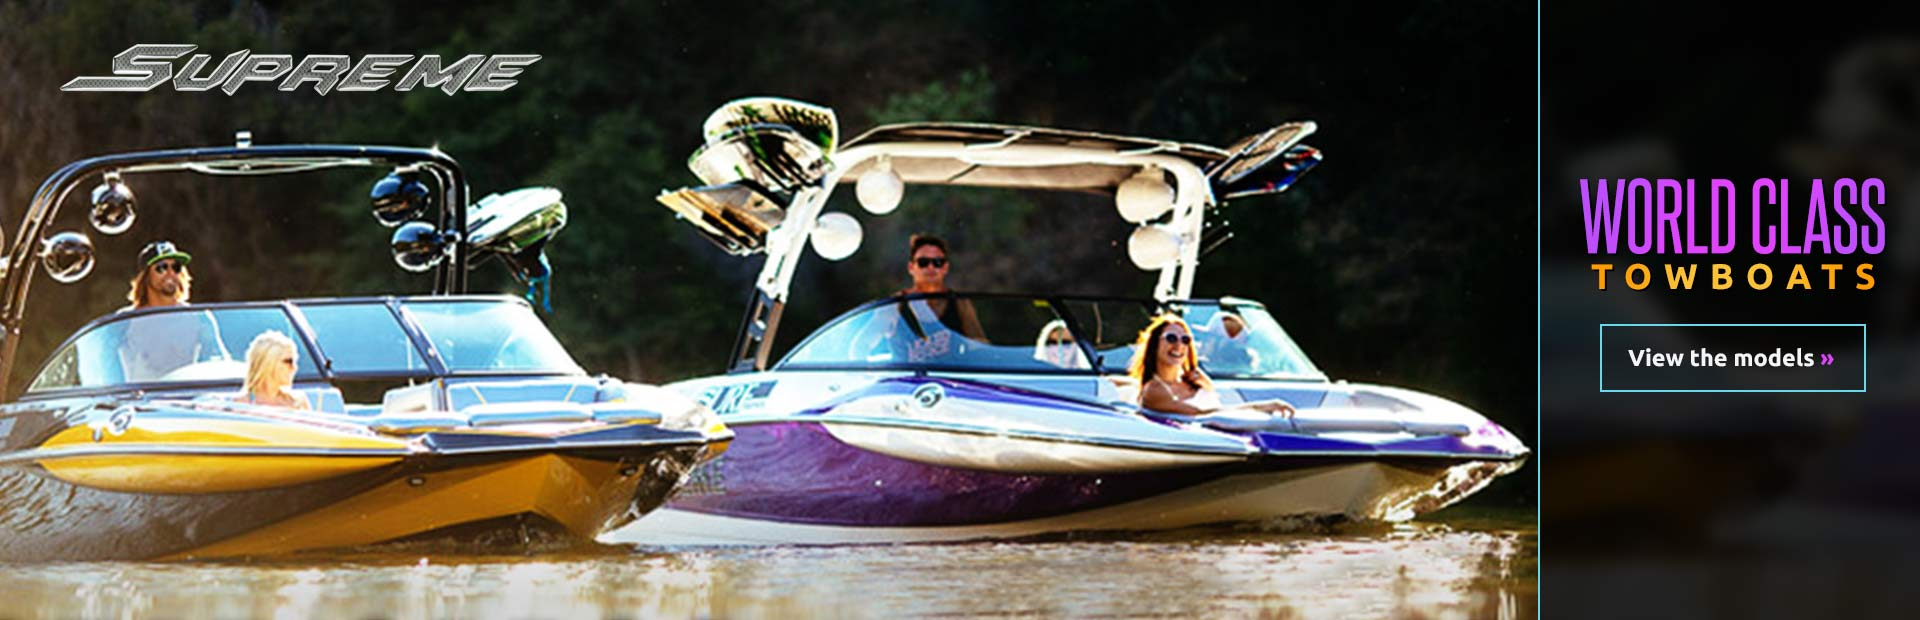 Click here to view the lineup of Supreme towboats.